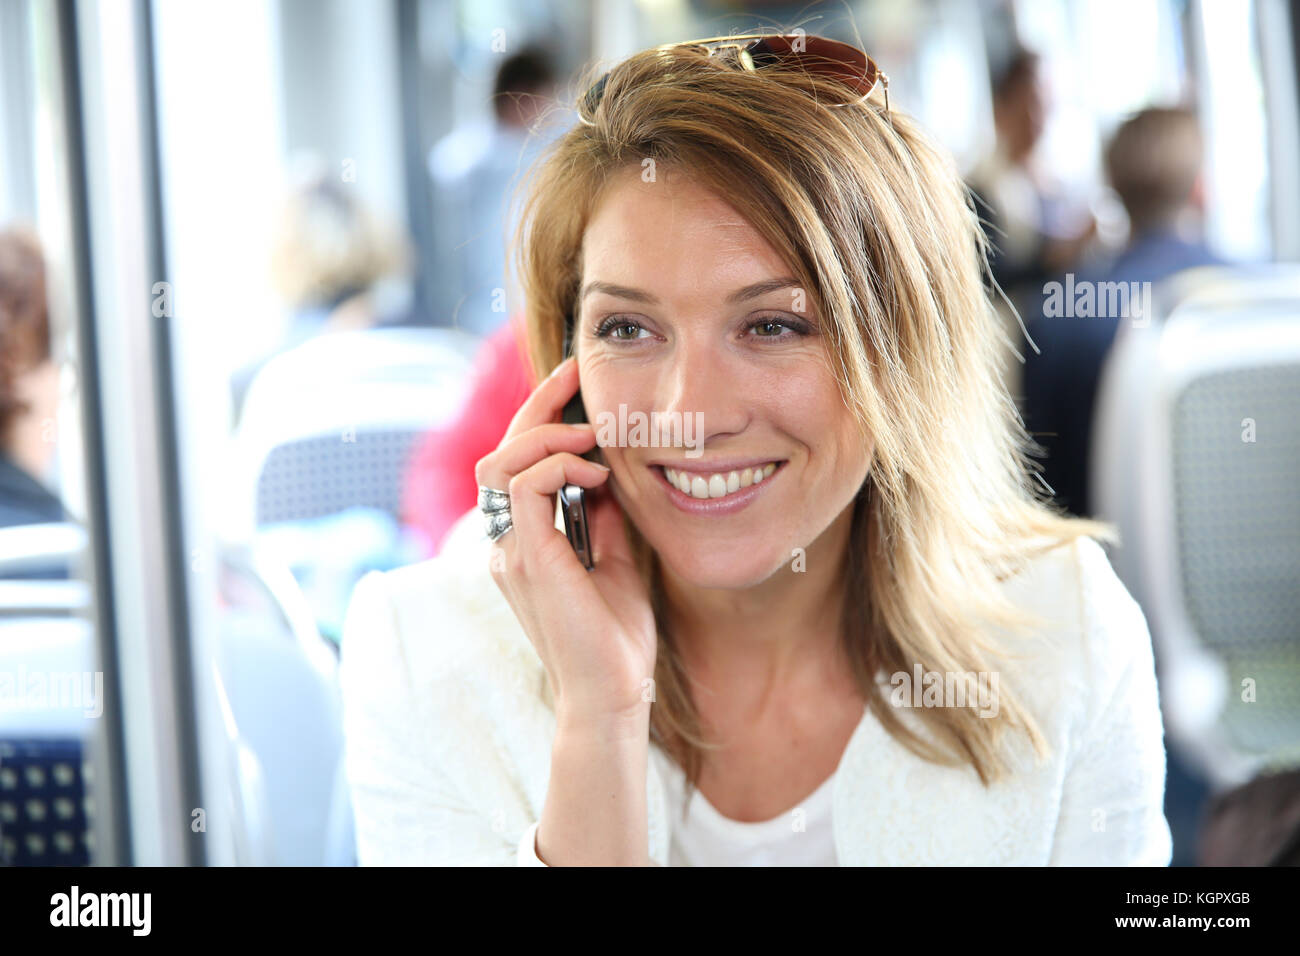 Smiling girl in city train using smartphone - Stock Image